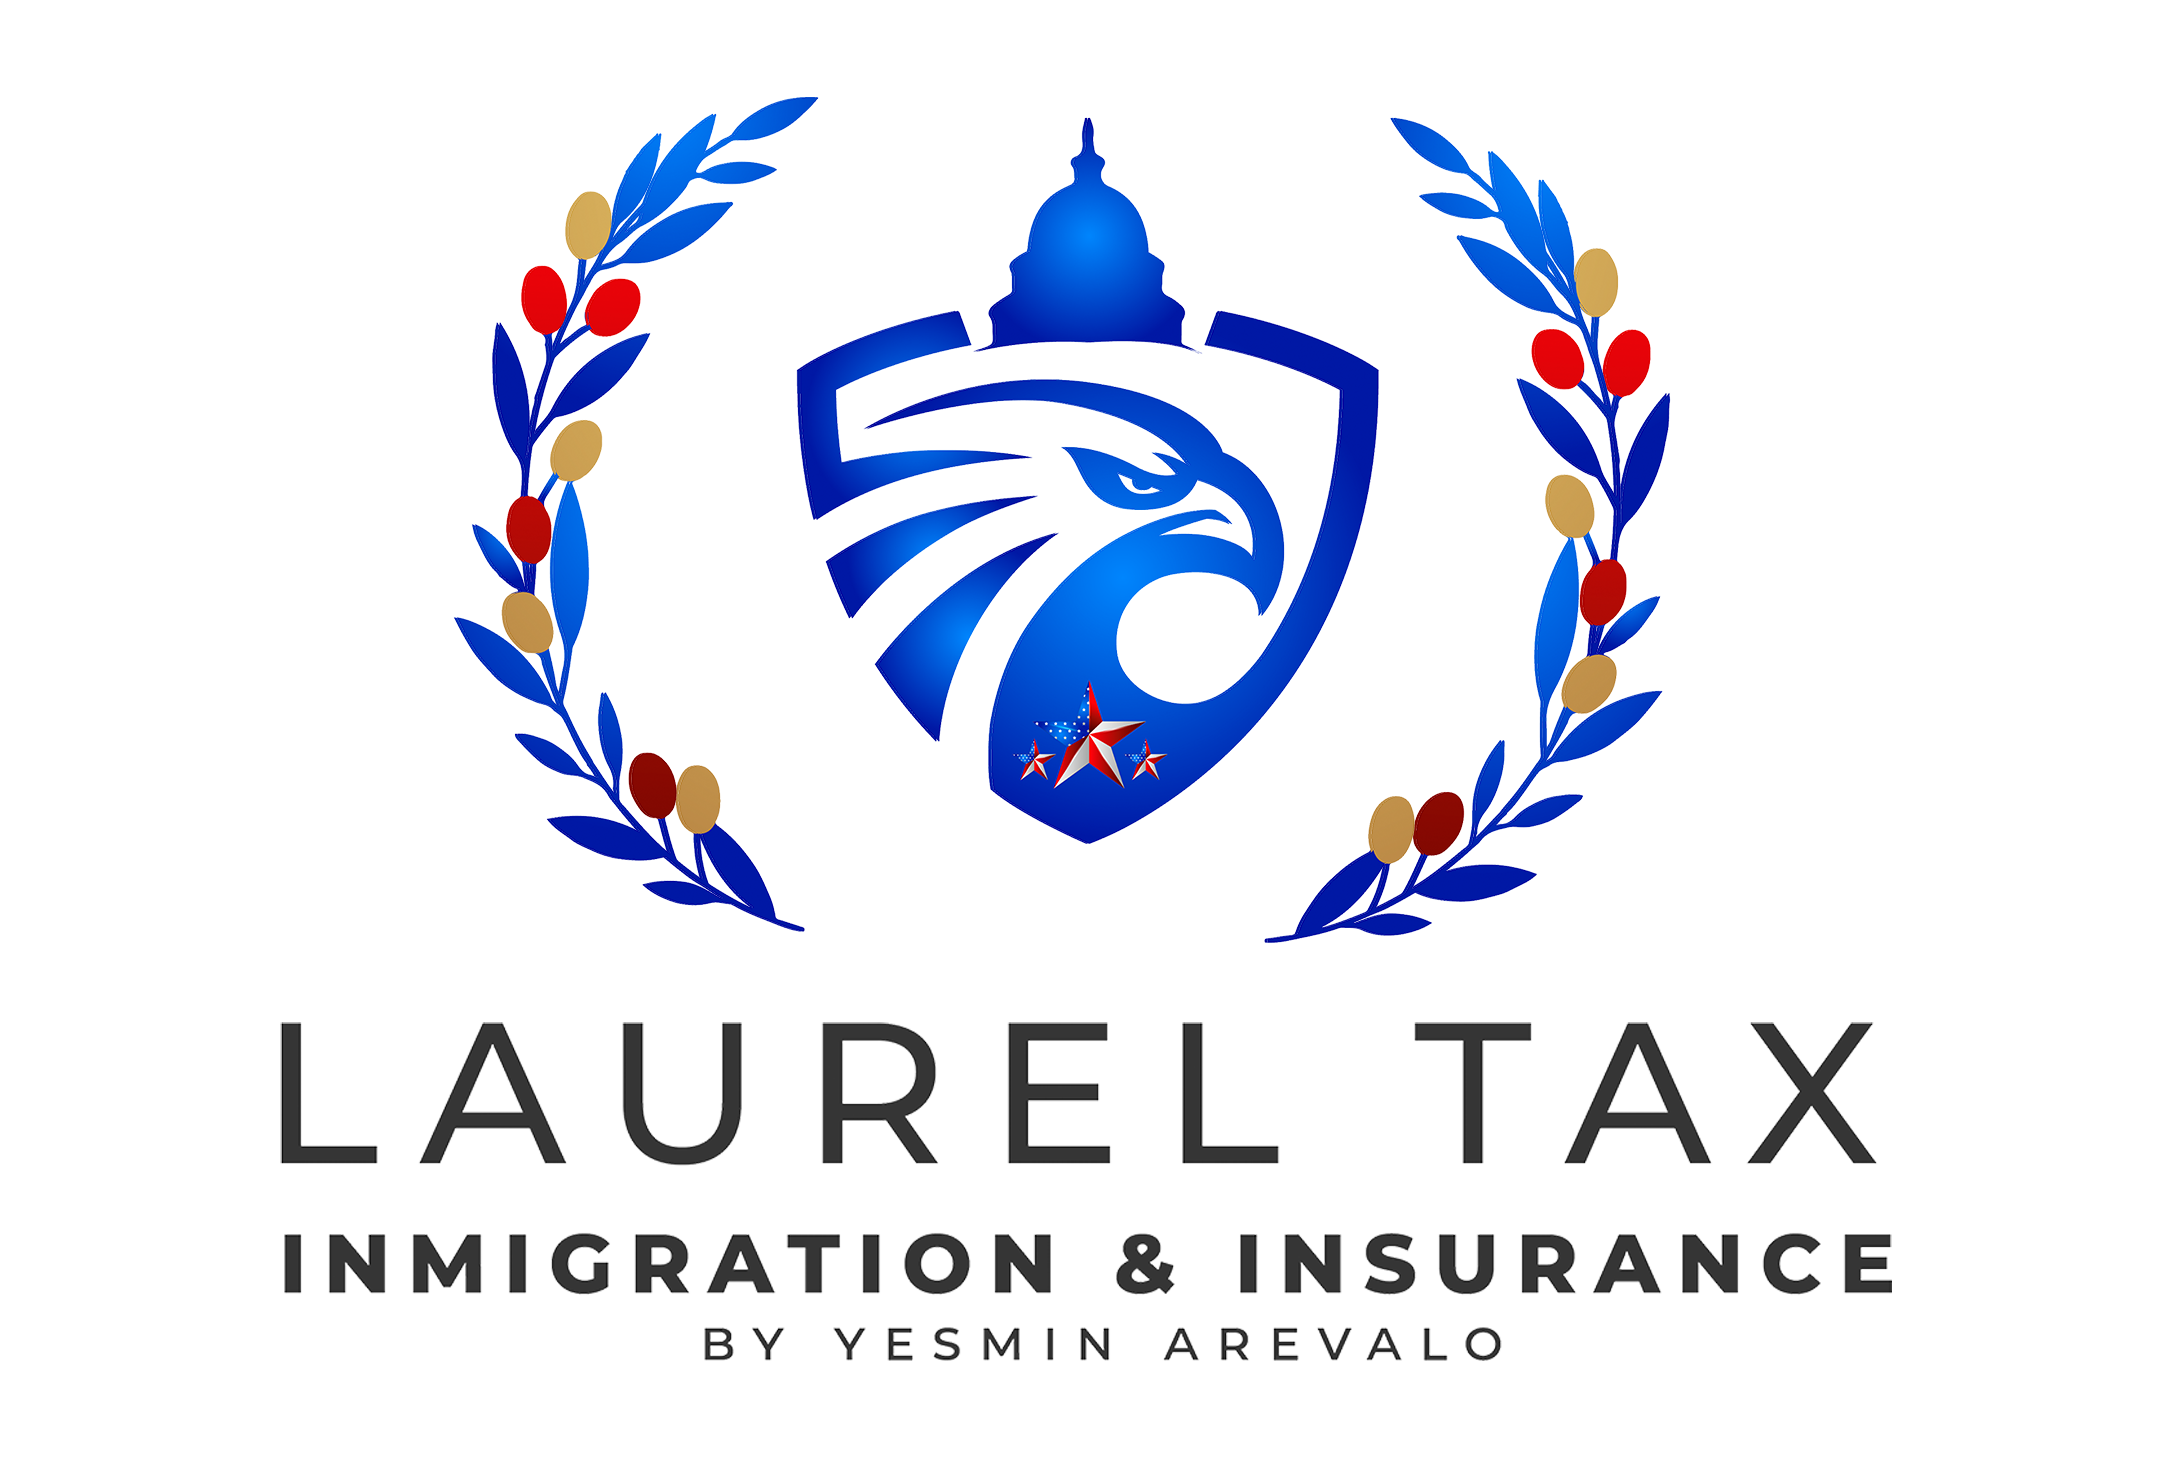 Laurel Tax